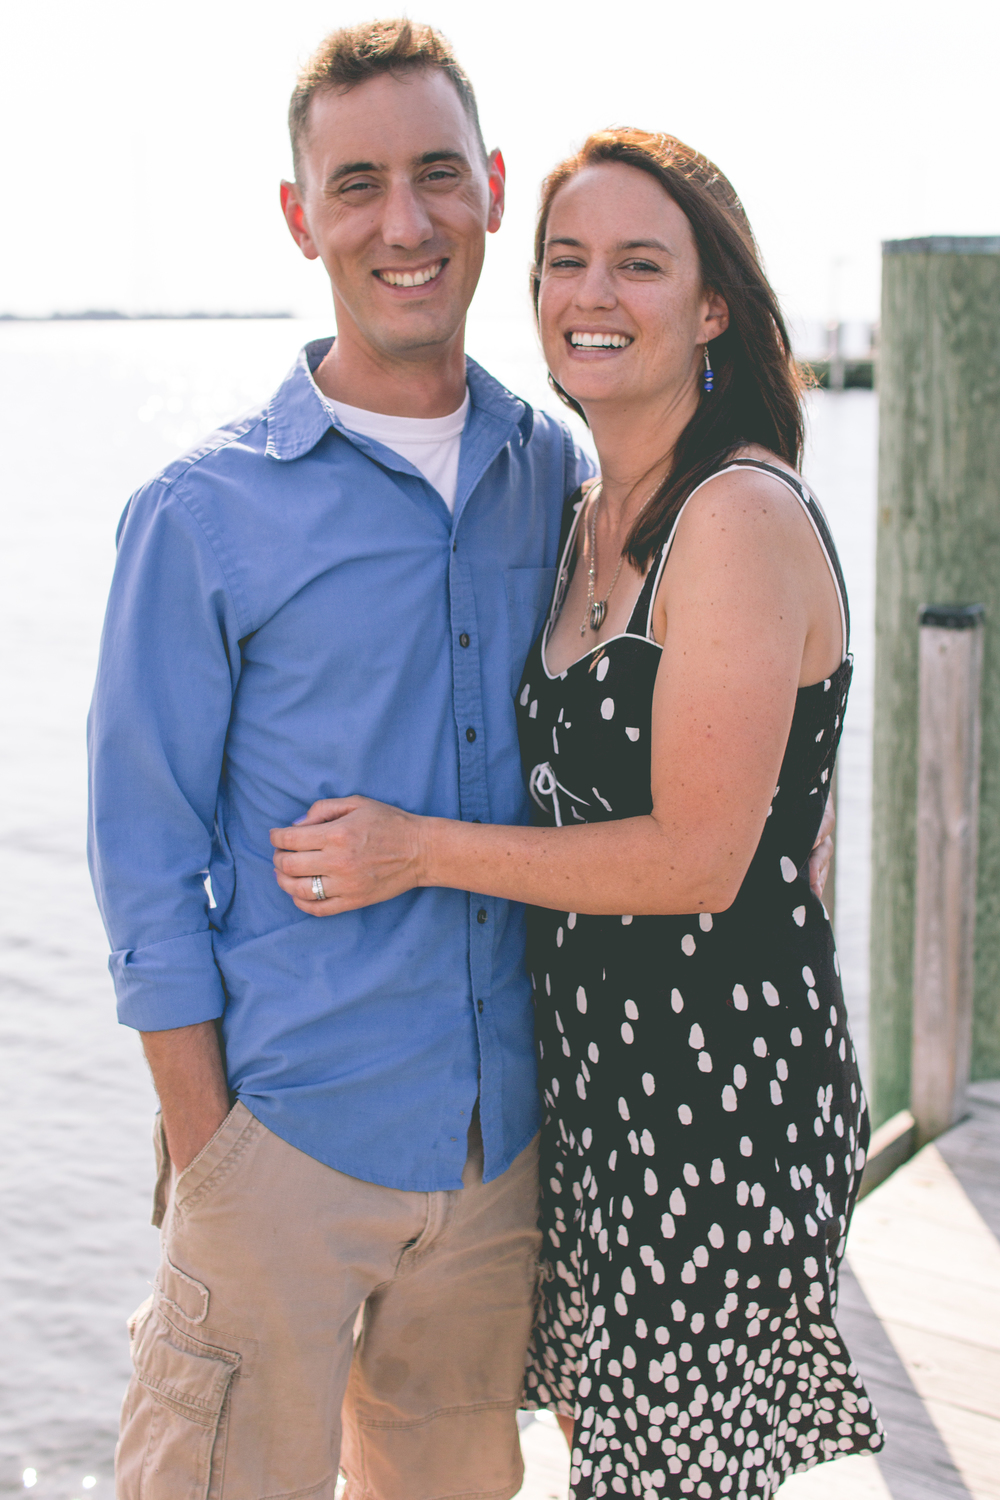 Cute-Annapolis-MD-Couple